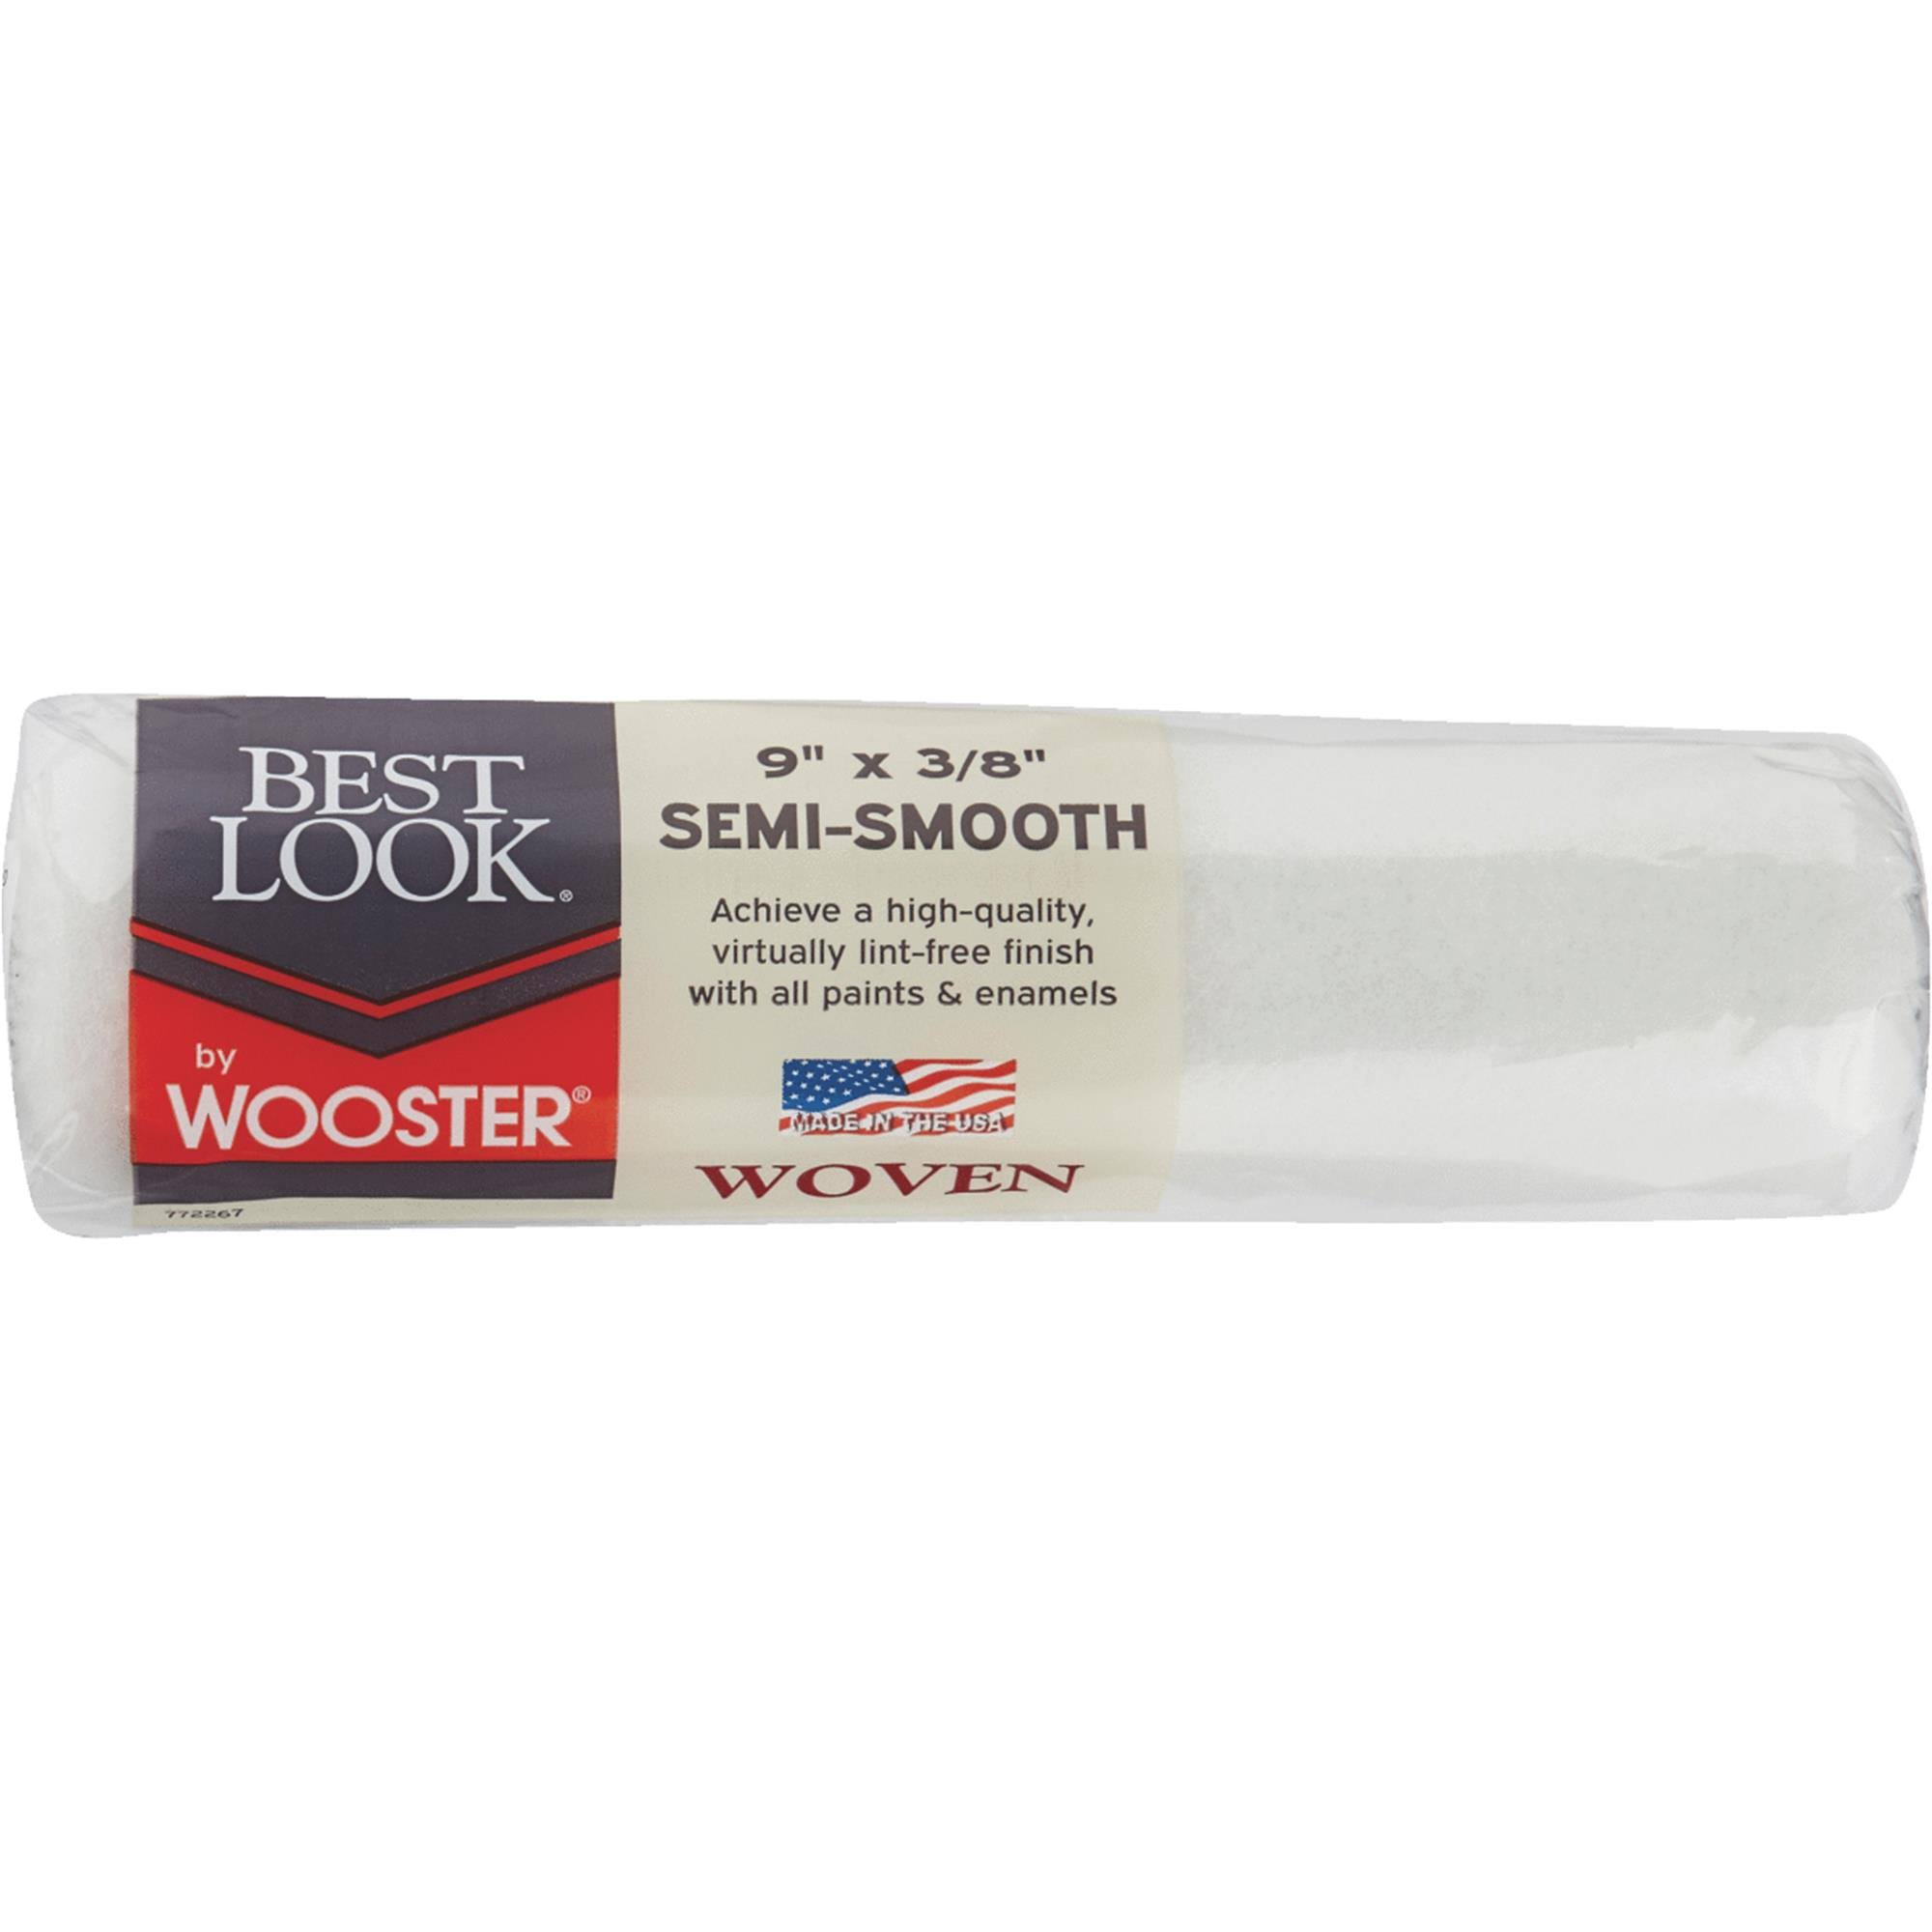 Wooster Brush 9x3/8 Woven Roller Cover DR462-9